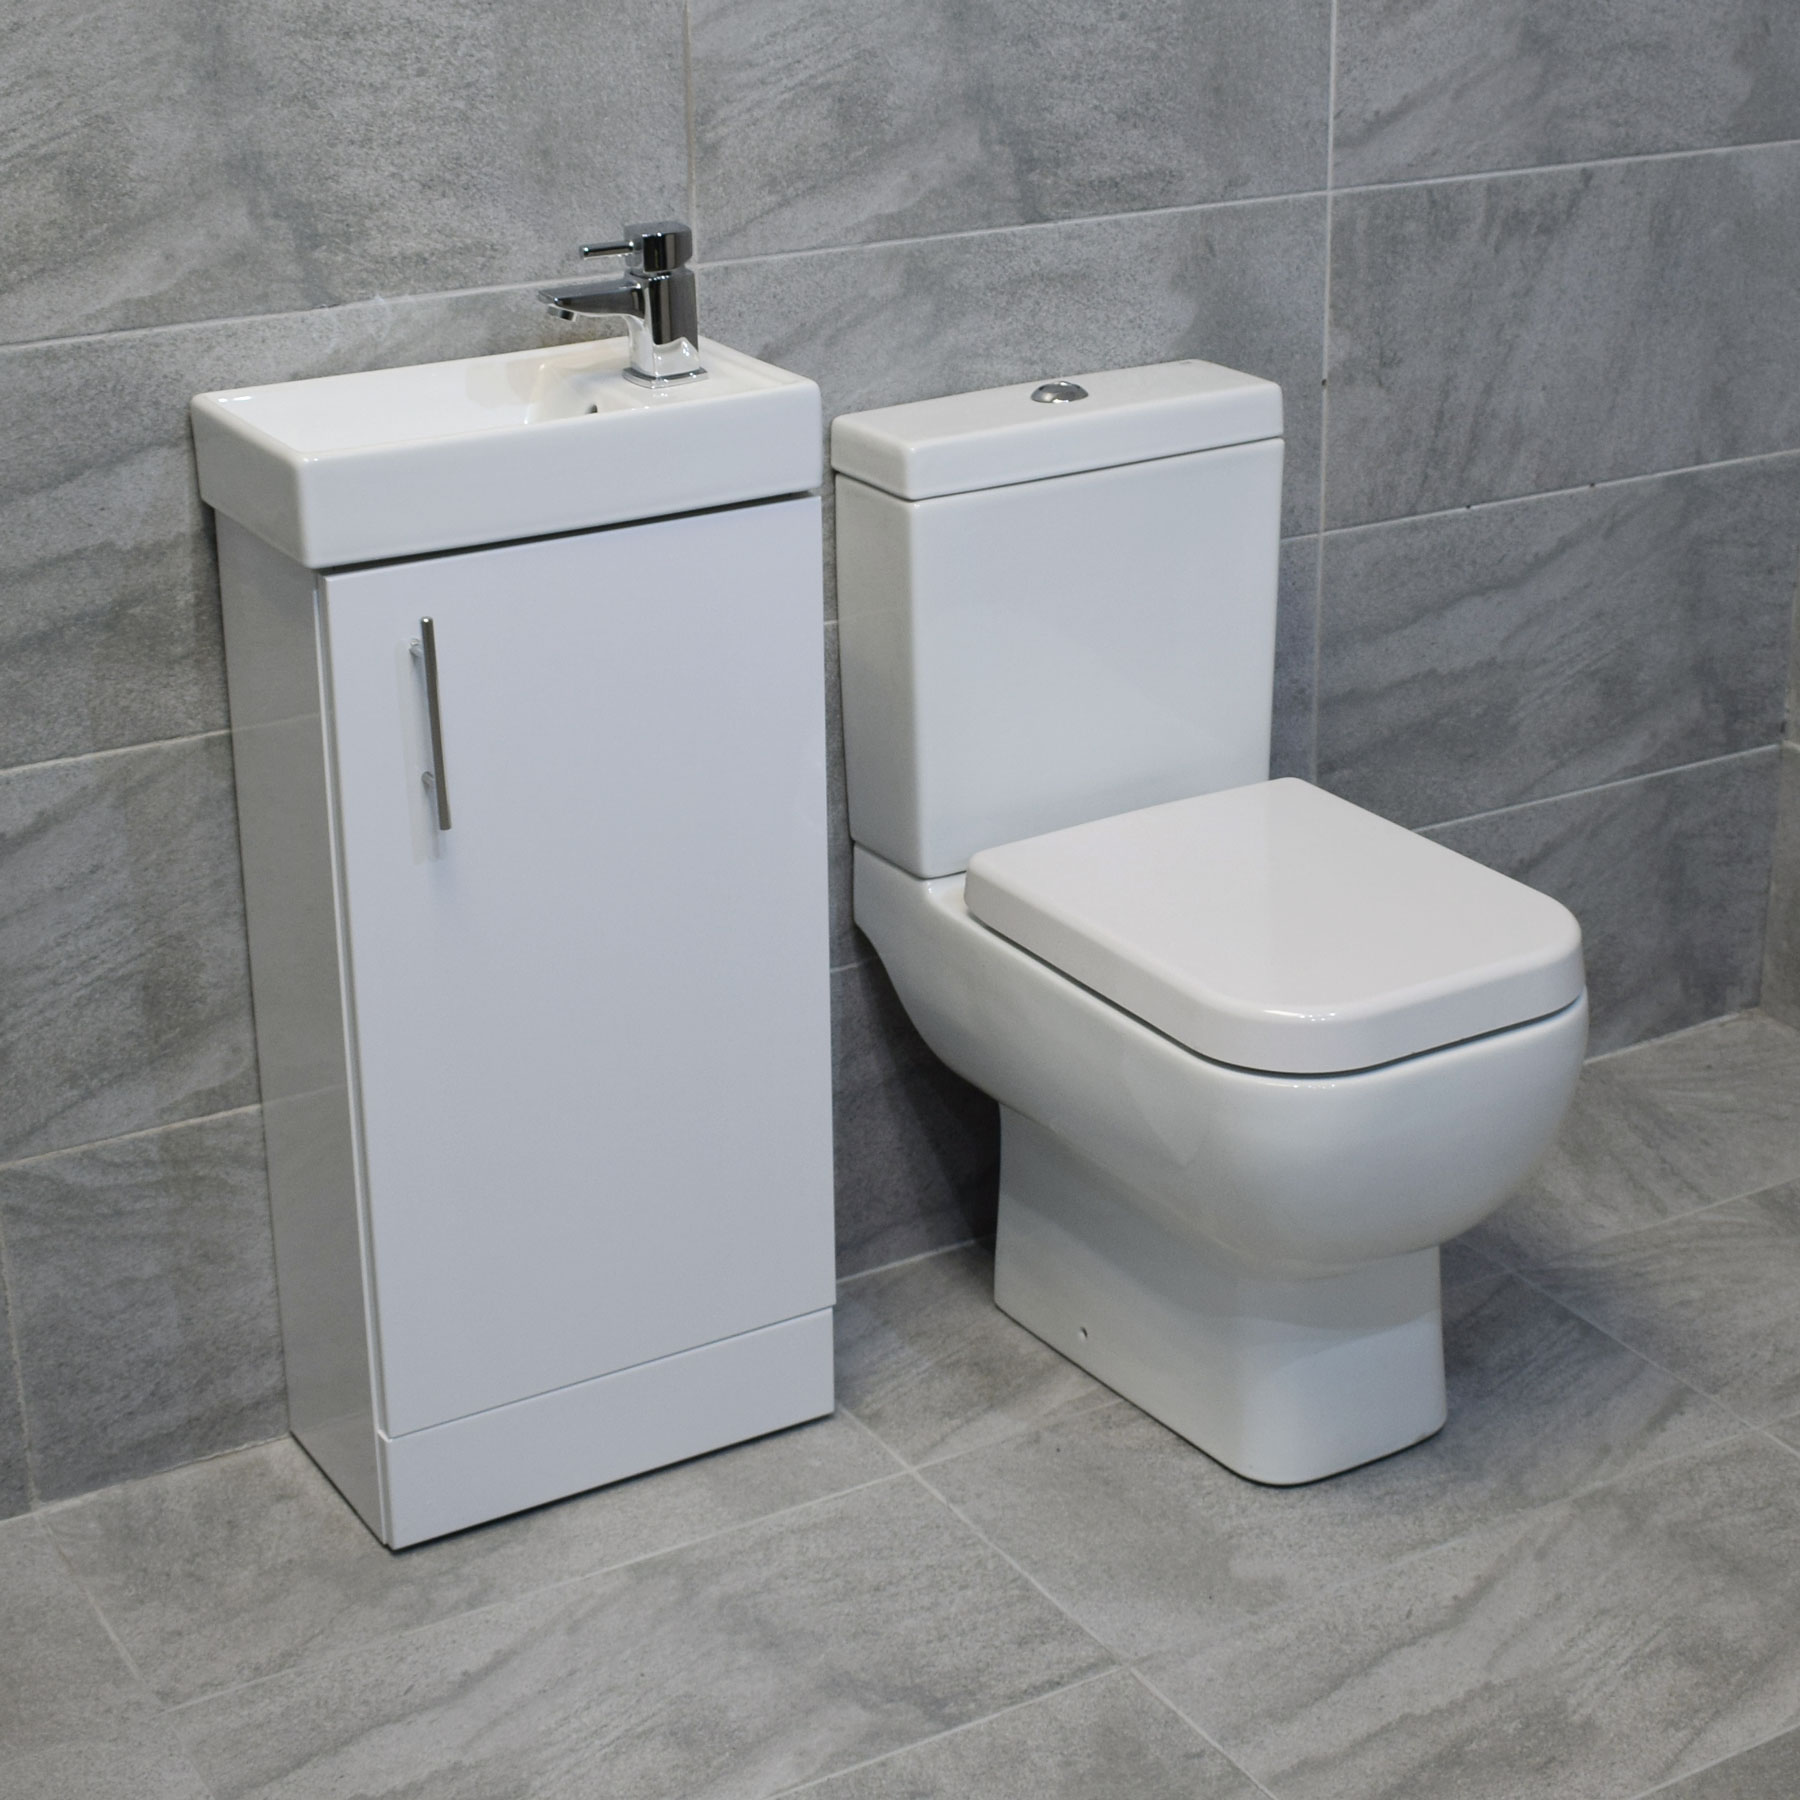 400mm square vanity sink unit with rak series 600 toilet for Washroom set